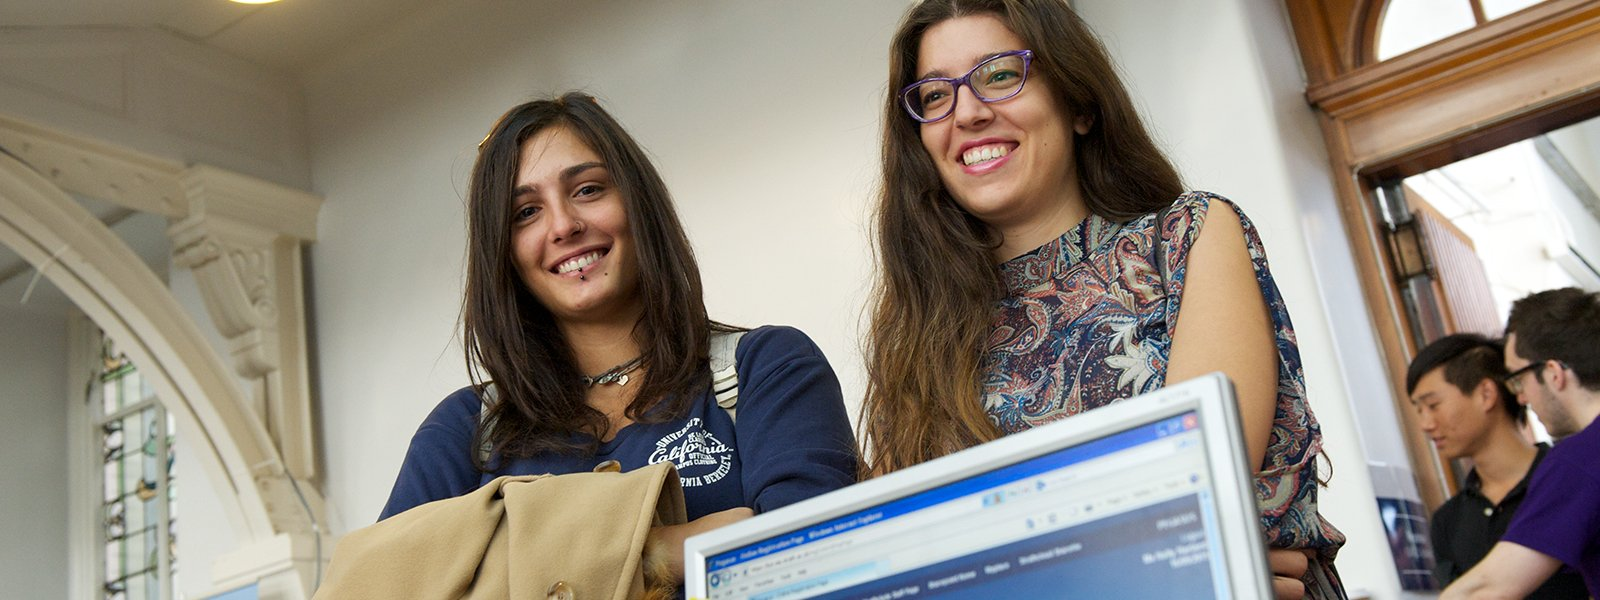 Students register at Strathclyde at the start of term.